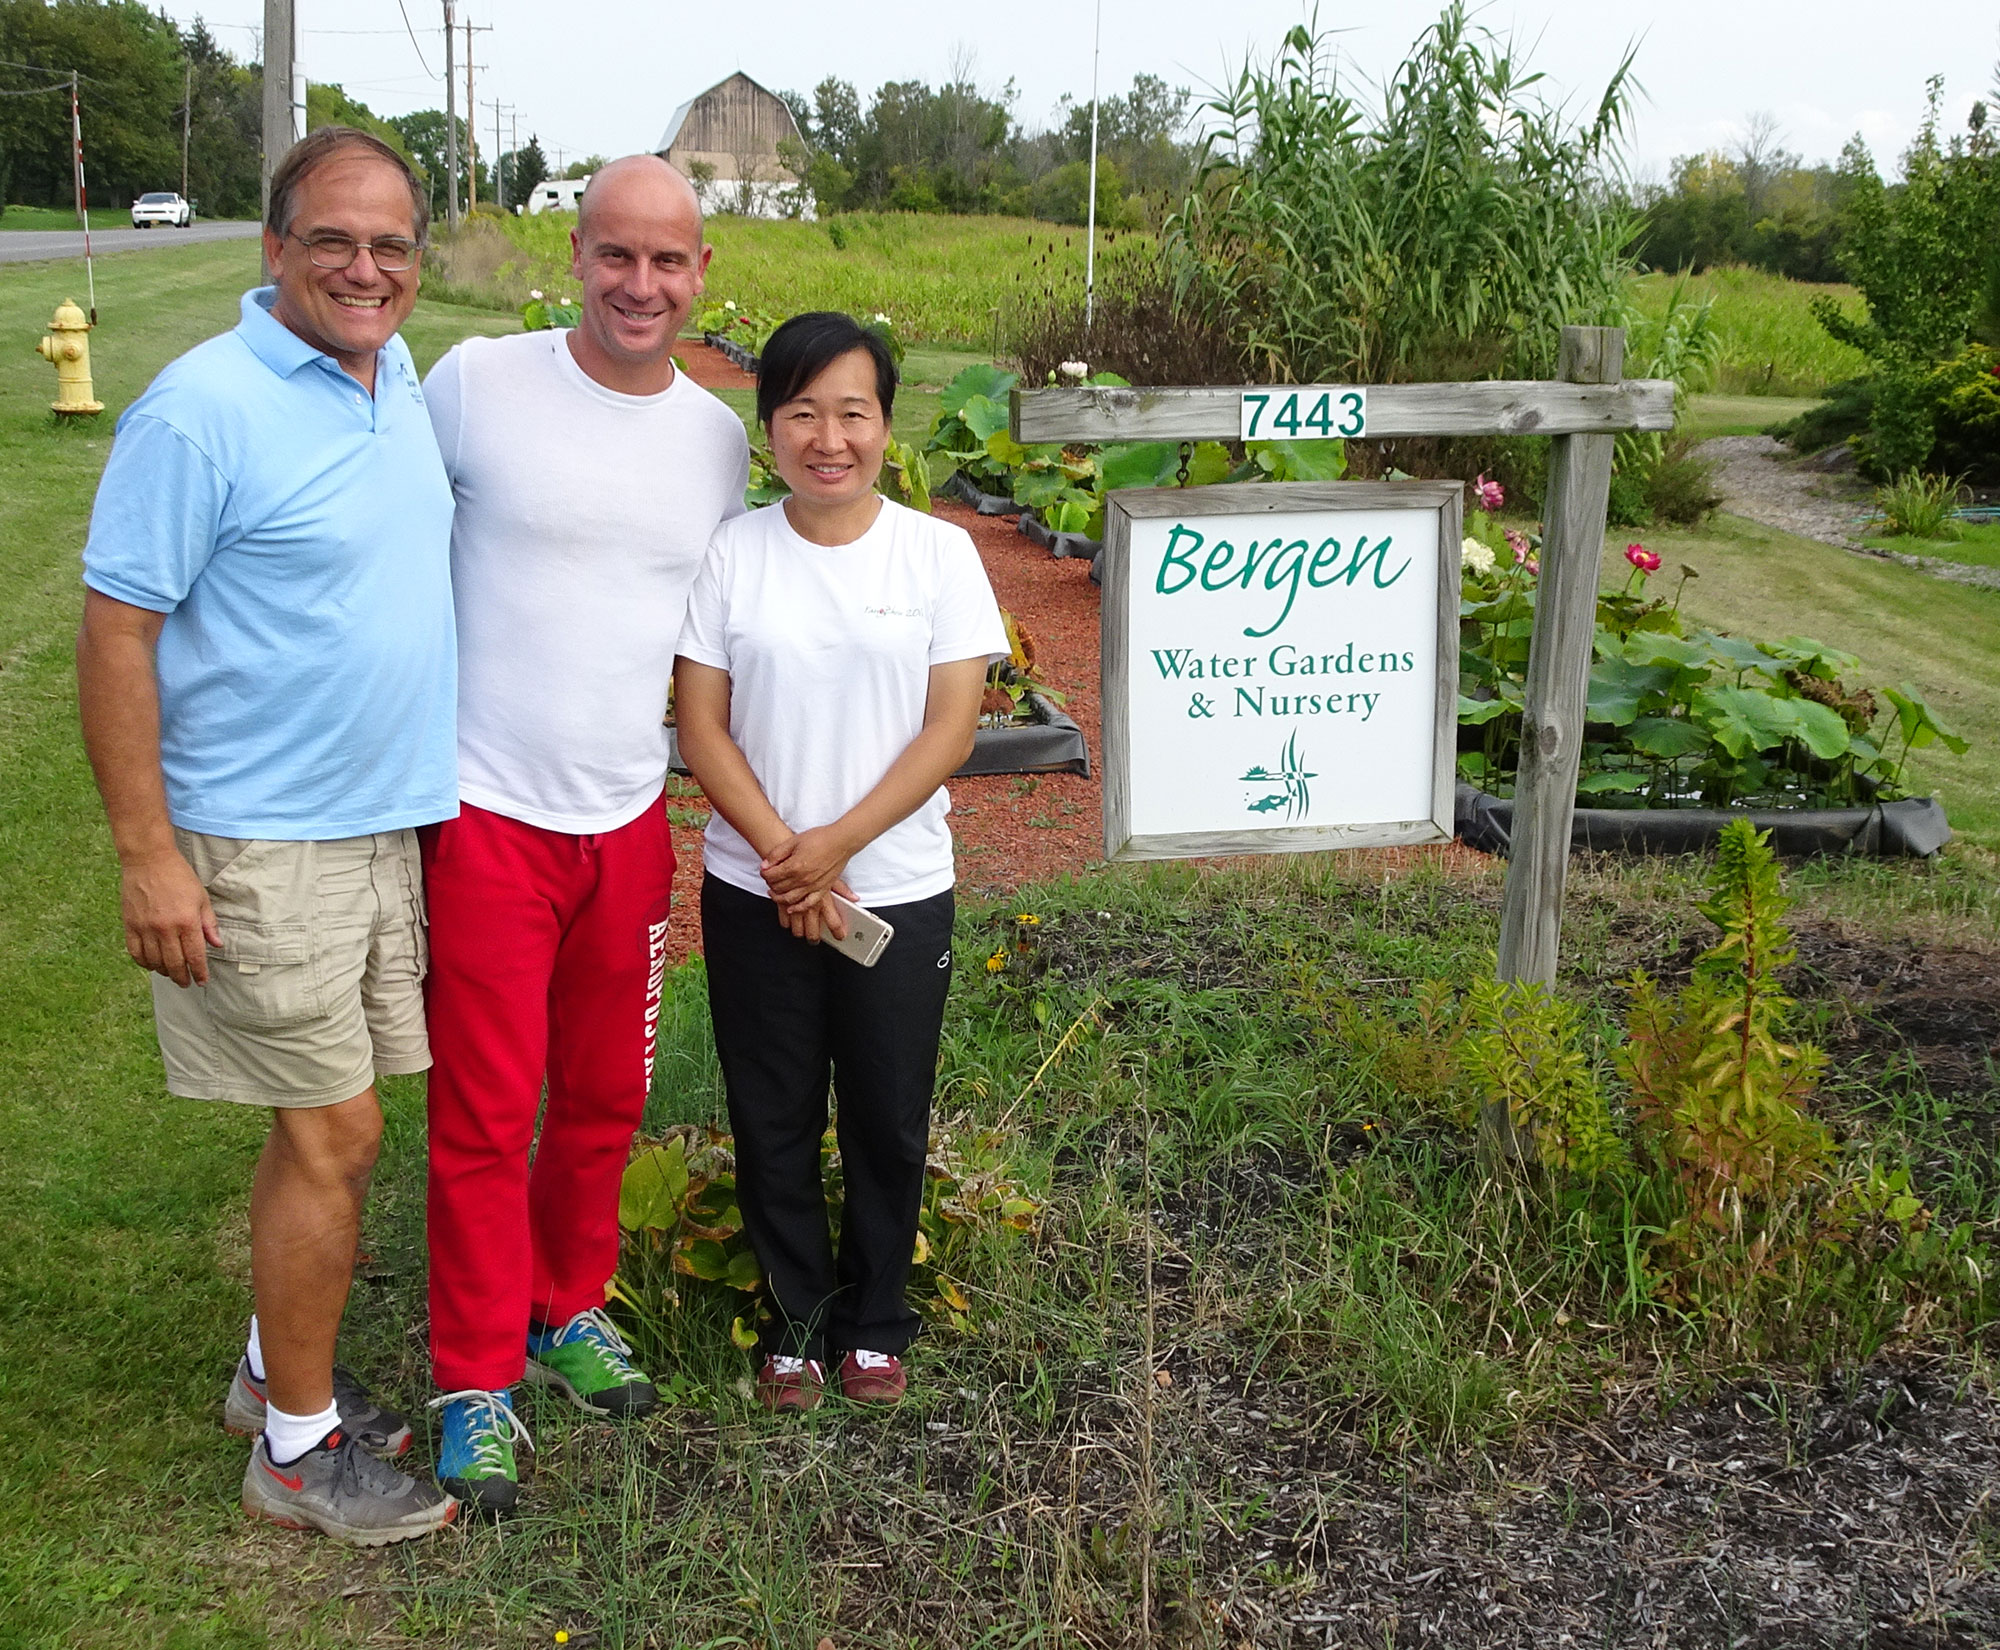 Gianluca, Larry and Lily at Bergen Watergarden entrance